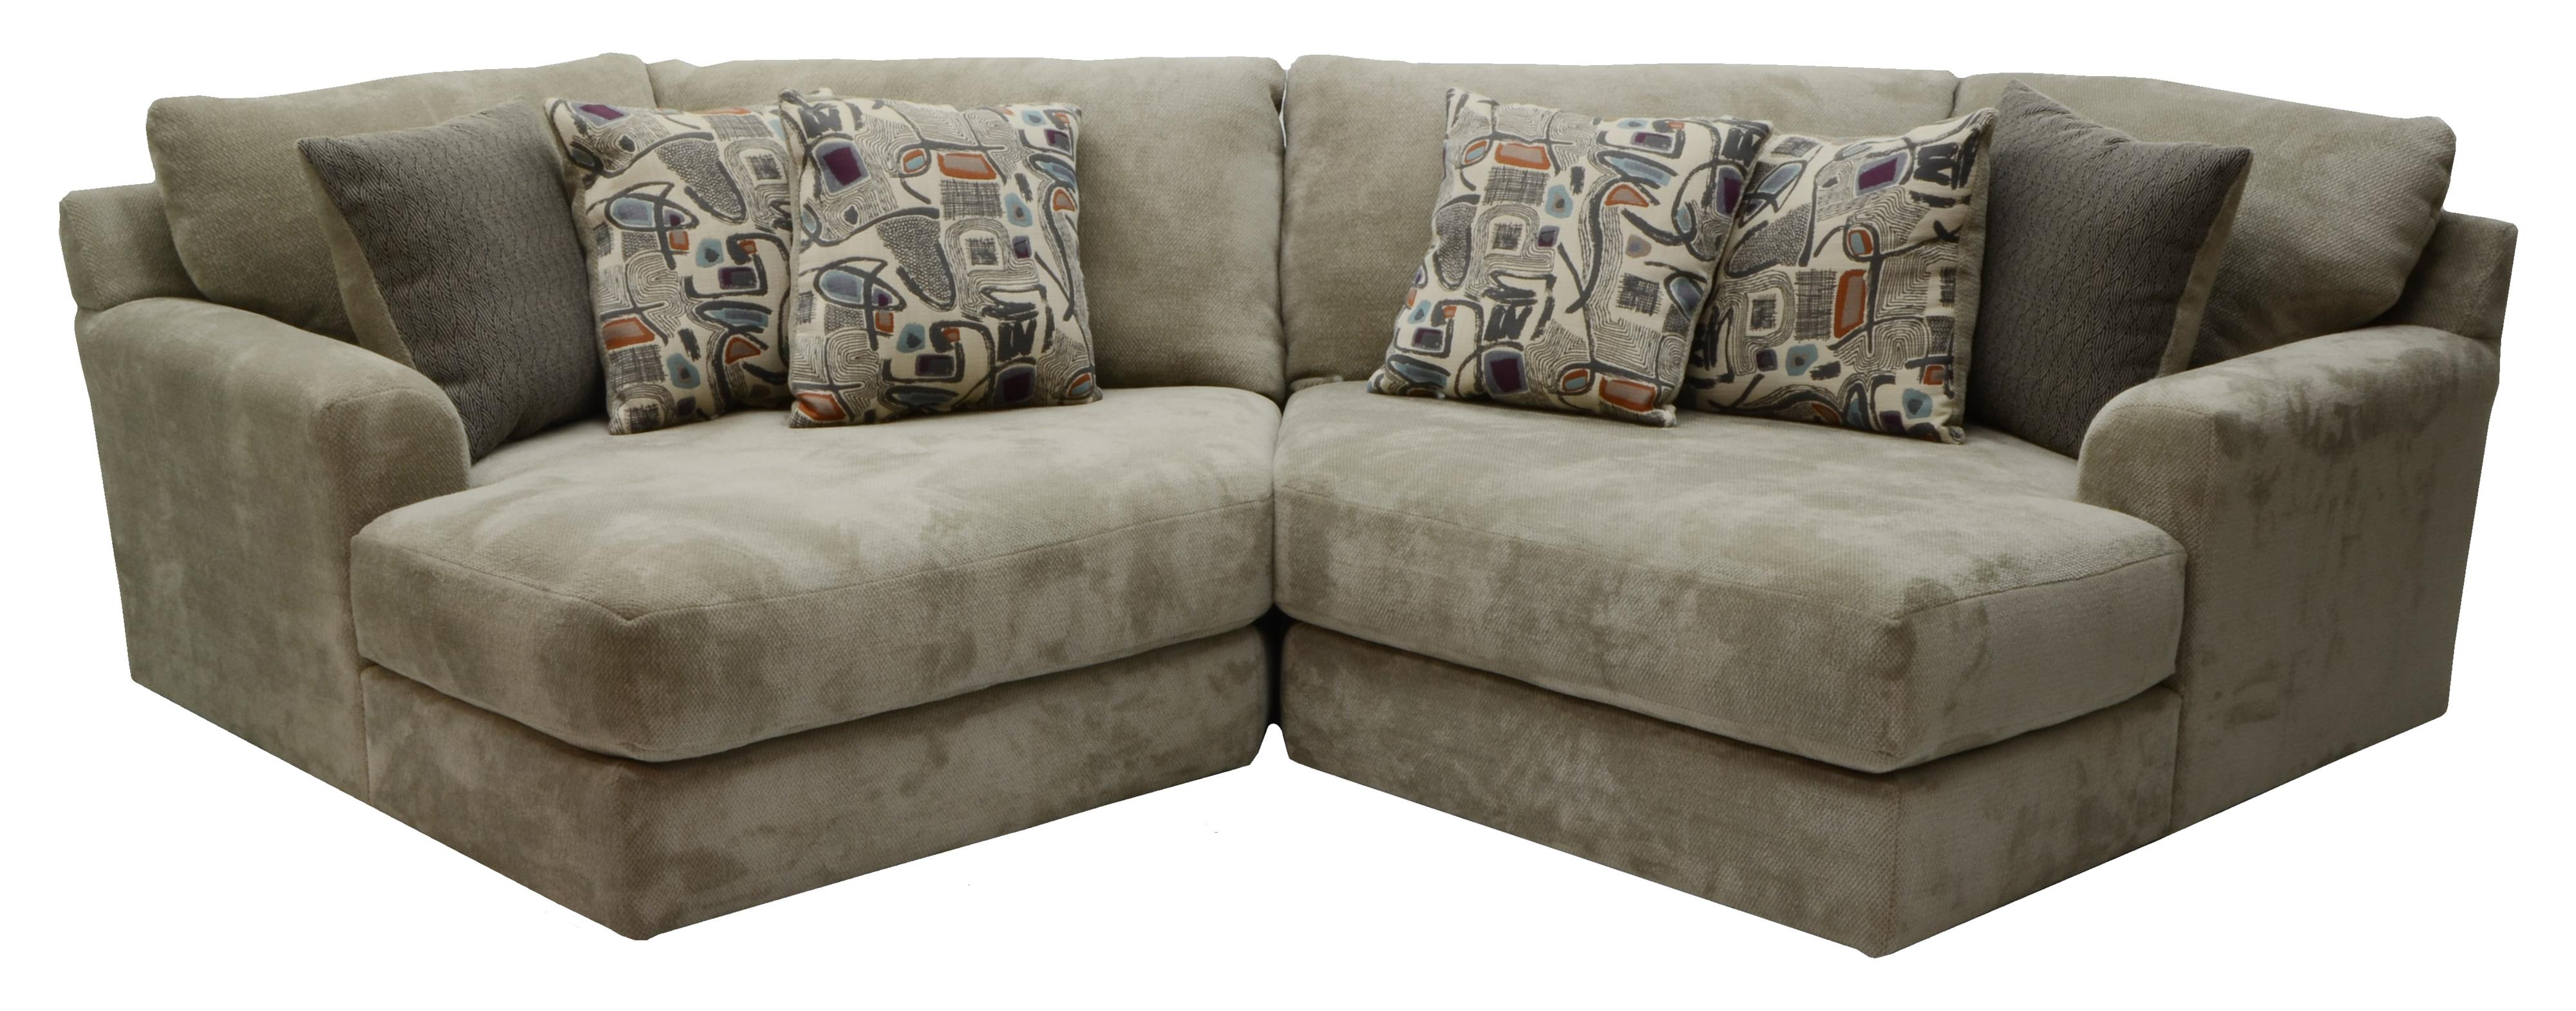 Jackson Furniture Malibu Two Seat Sectional - Item Number: 3239-92+96-1983-36